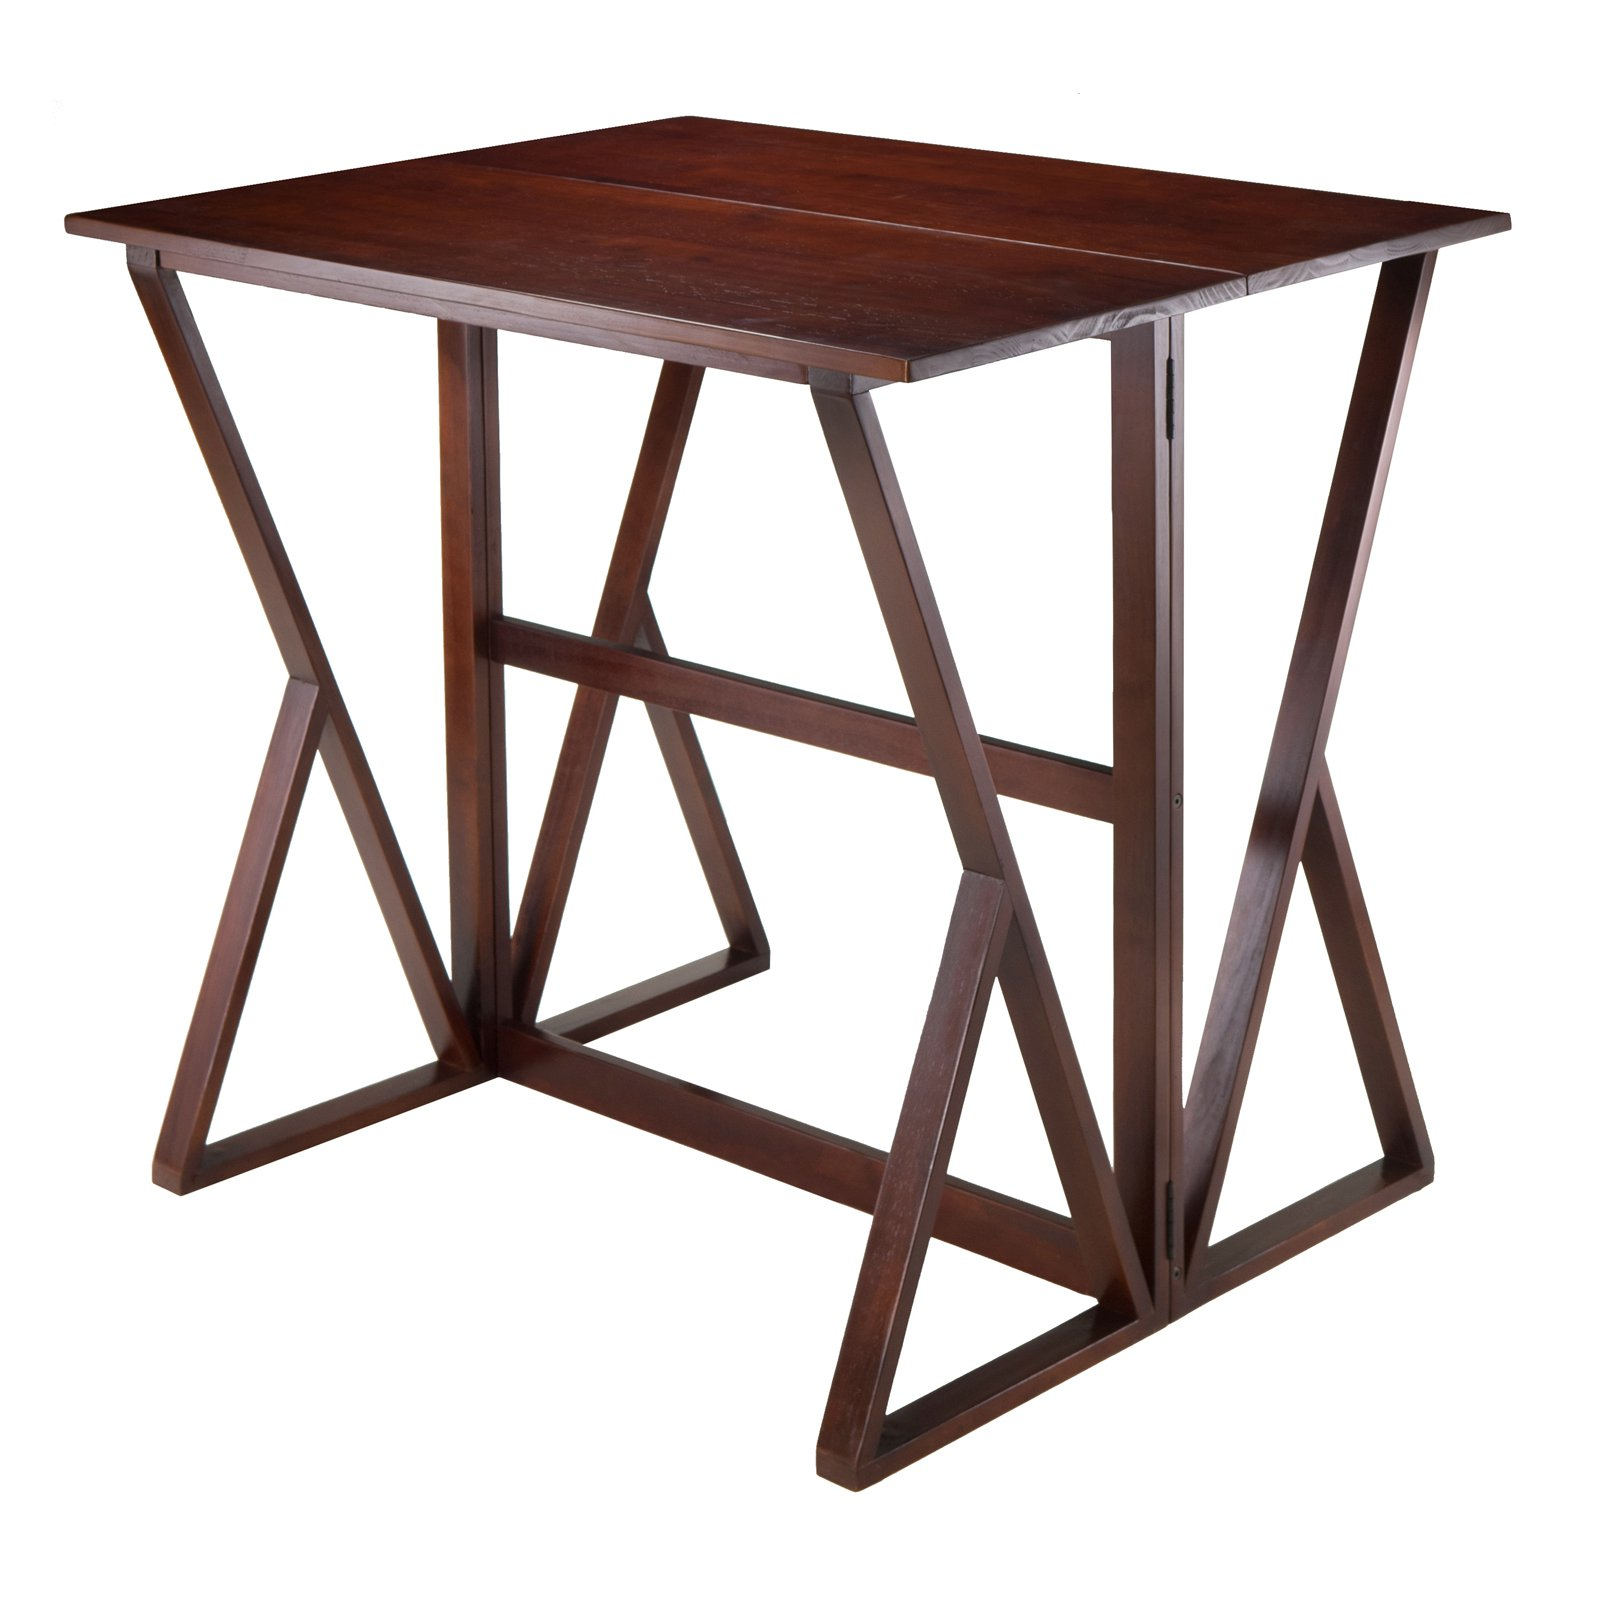 Harrington Drop Leaf High Table, Walnut   Walmart.com